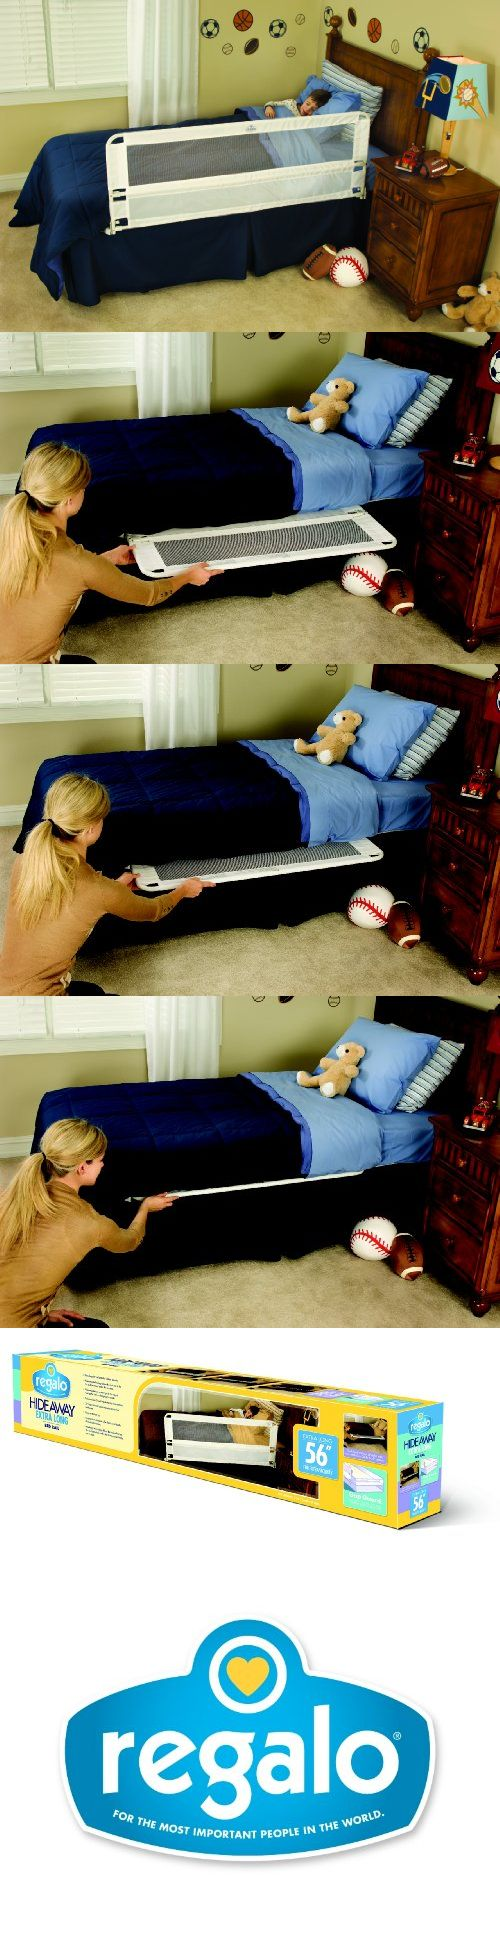 Regalo Hide Away Extra Long Bed Rail, White - The latest in bed safety rail technology is now available in an extra-long 56 length for added security. There are no more hassles making the bed or changing sheets. 20 extra-high side barrier accom... - Rails & Rail Guards - Baby - $26.95